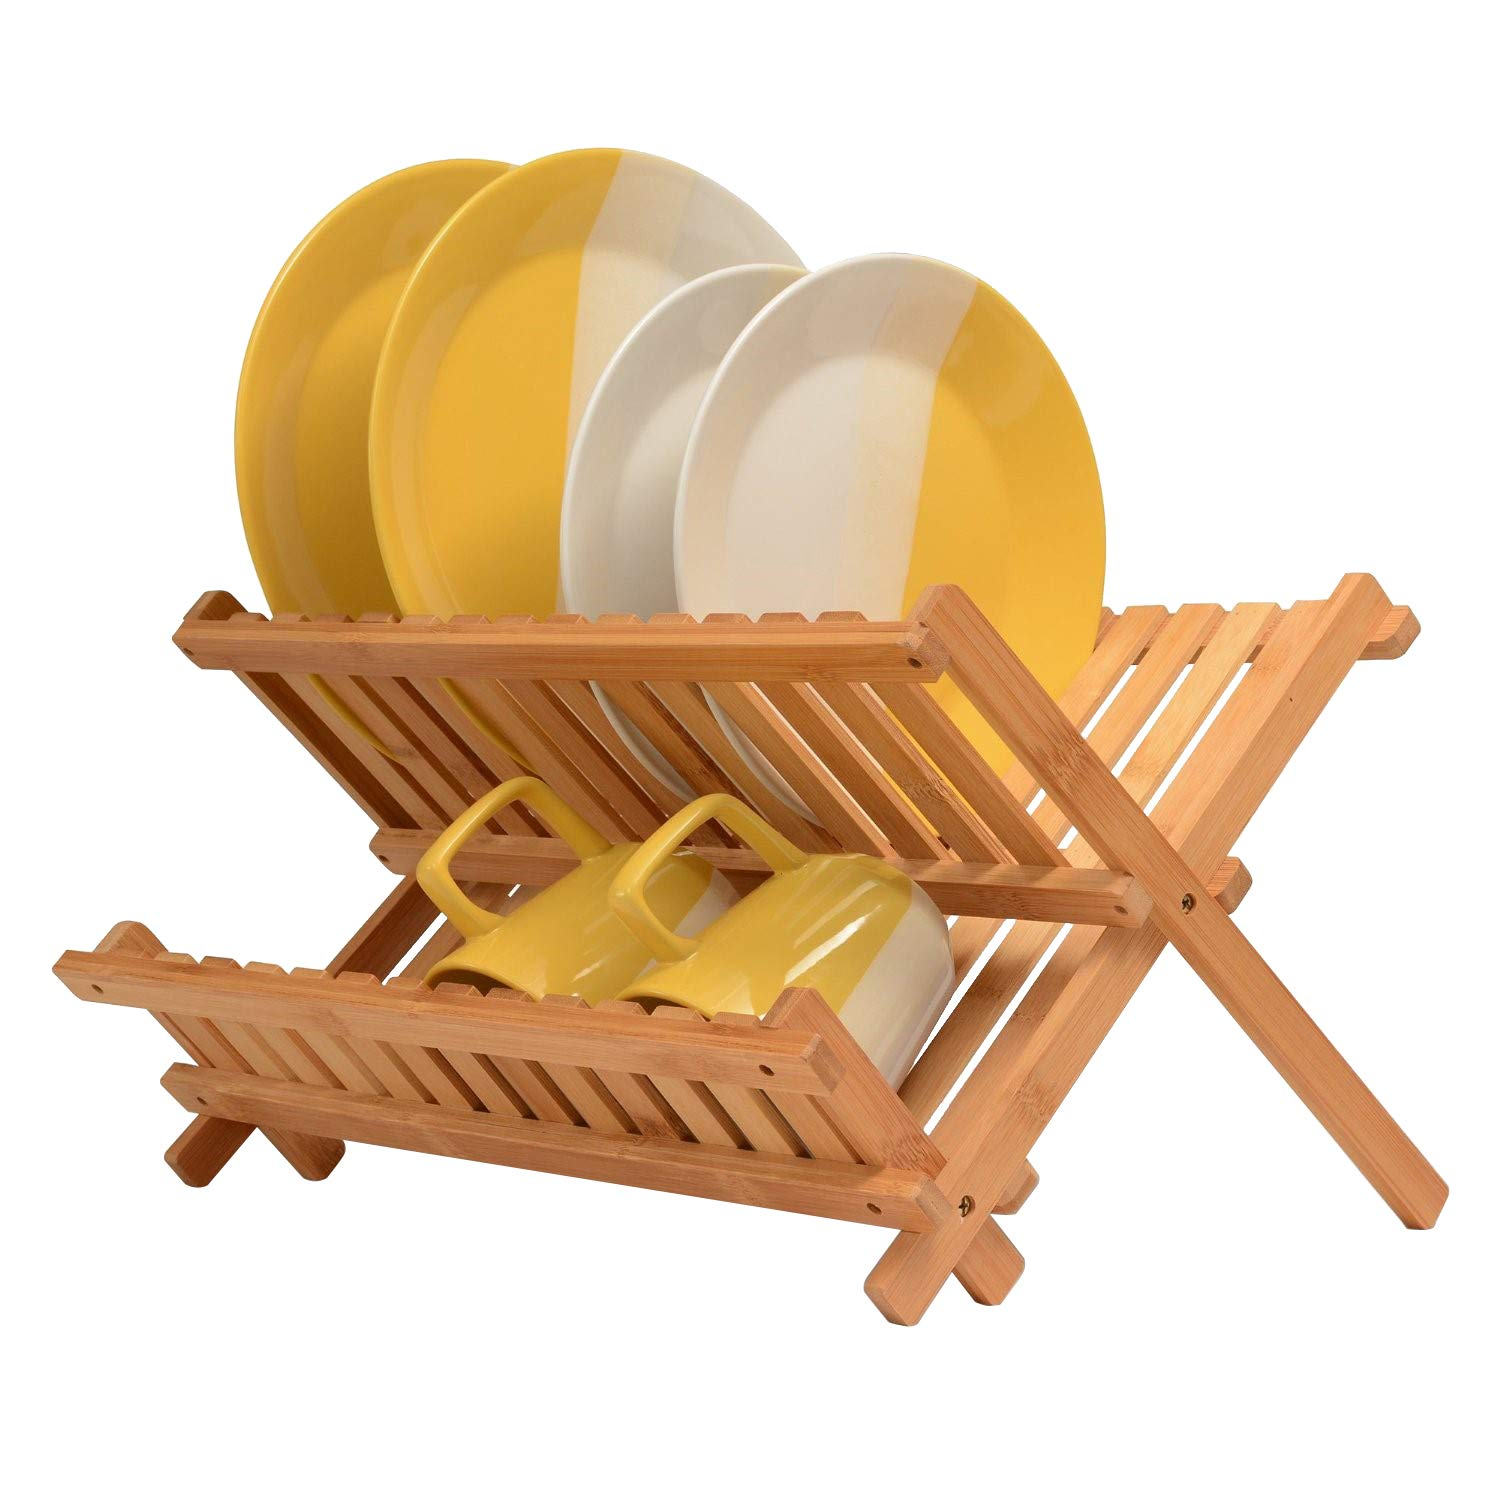 Bamboo Dish Drying Rack.Bambusi Collapsible Dish Drying Rack Bamboo Kitchen Folding Dish Rack Plate Holder Compact Foldable Dish Drainer